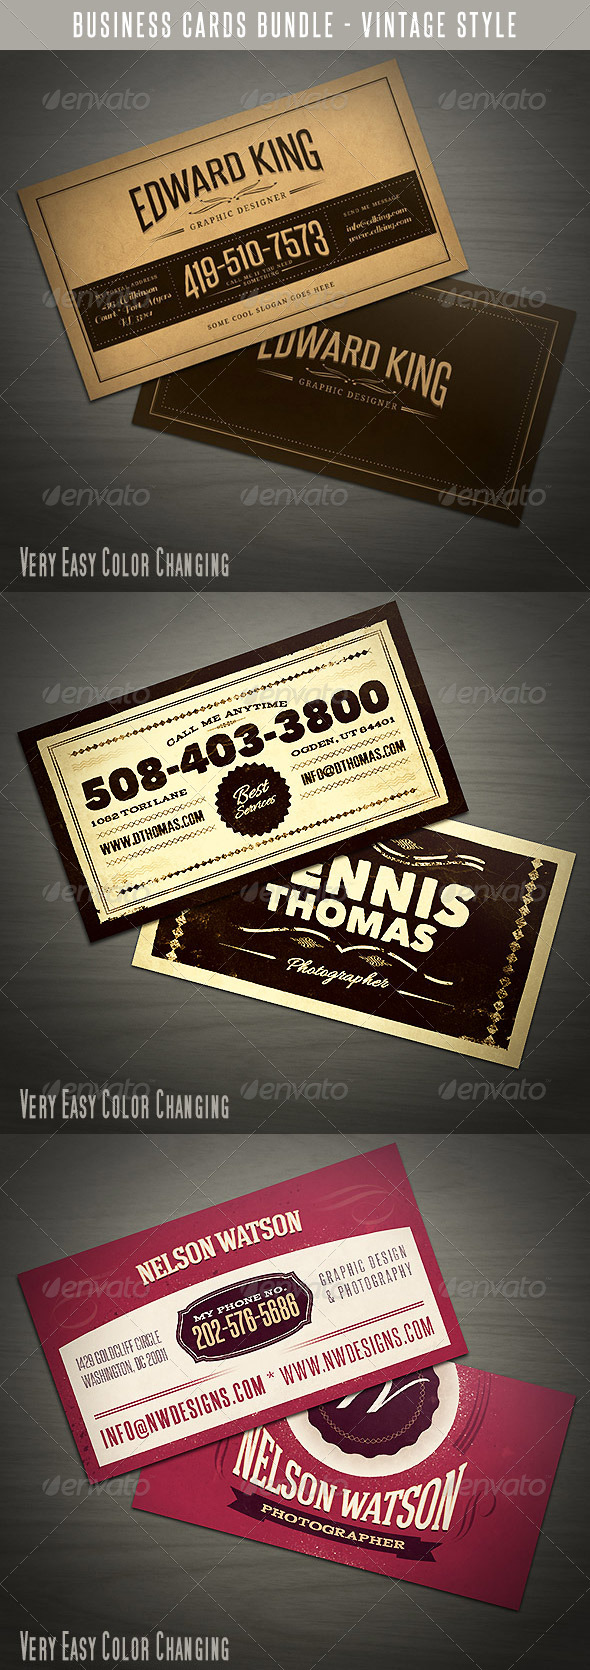 Vintage Business Cards Bundle - Retro/Vintage Business Cards